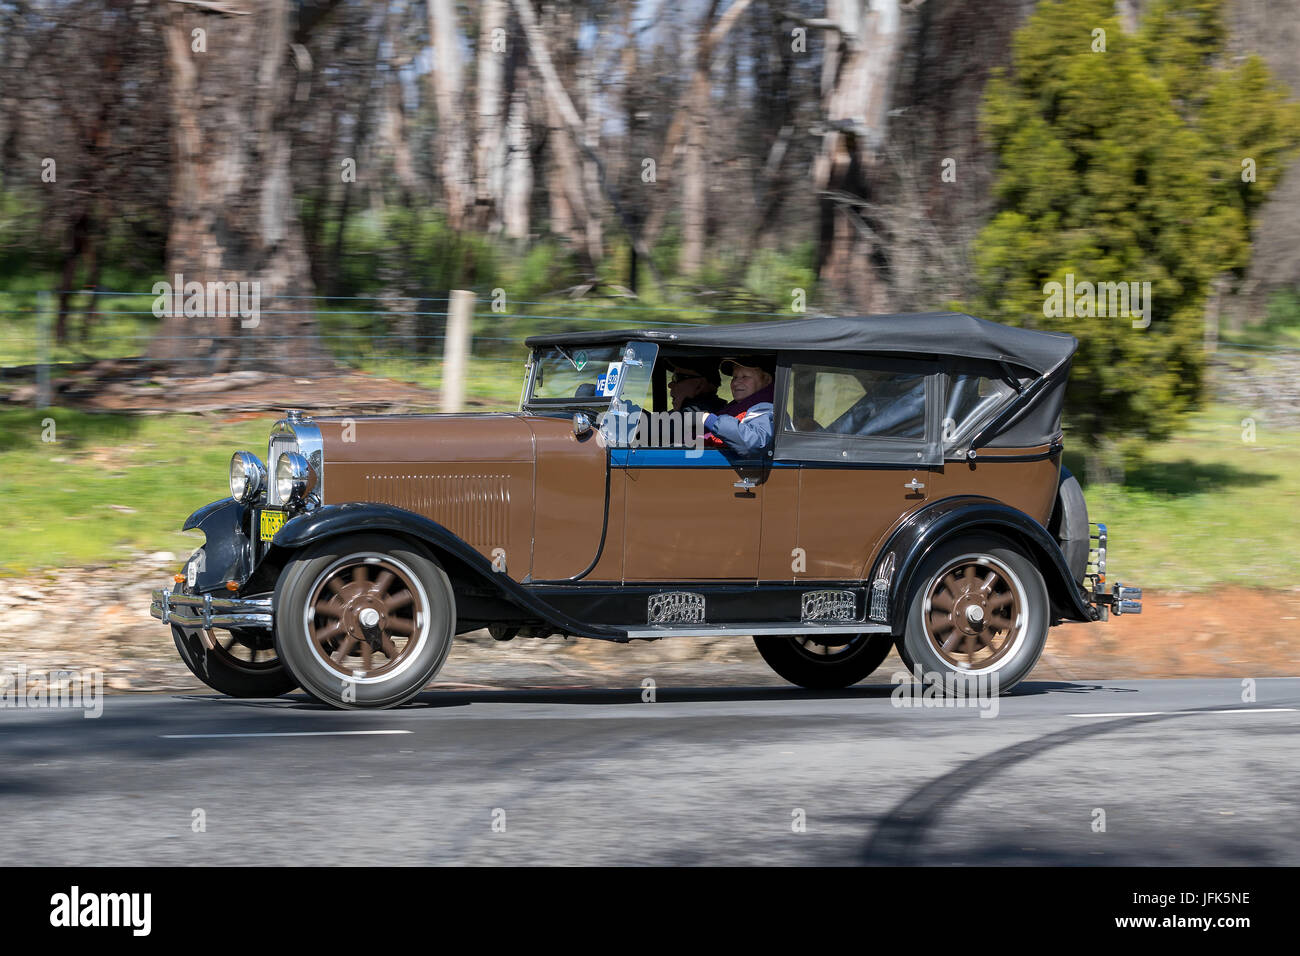 Vintage 1929 Oldsmobile FR Tourer driving on country roads near the town of Birdwood, South Australia. - Stock Image